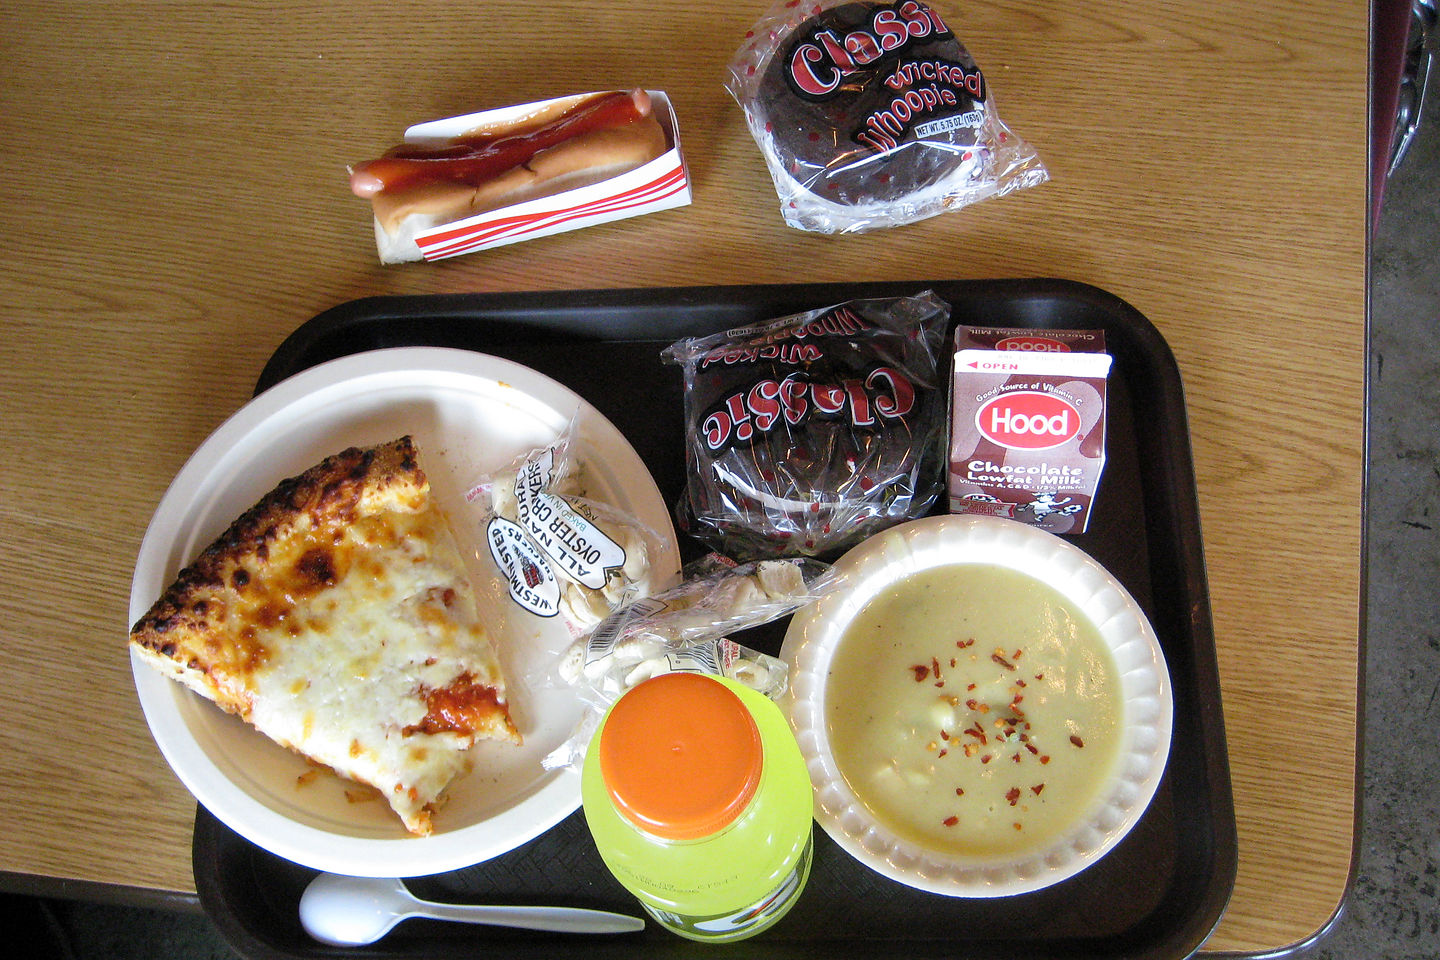 Healthy Lunch at Mt. Washington Cafeteria